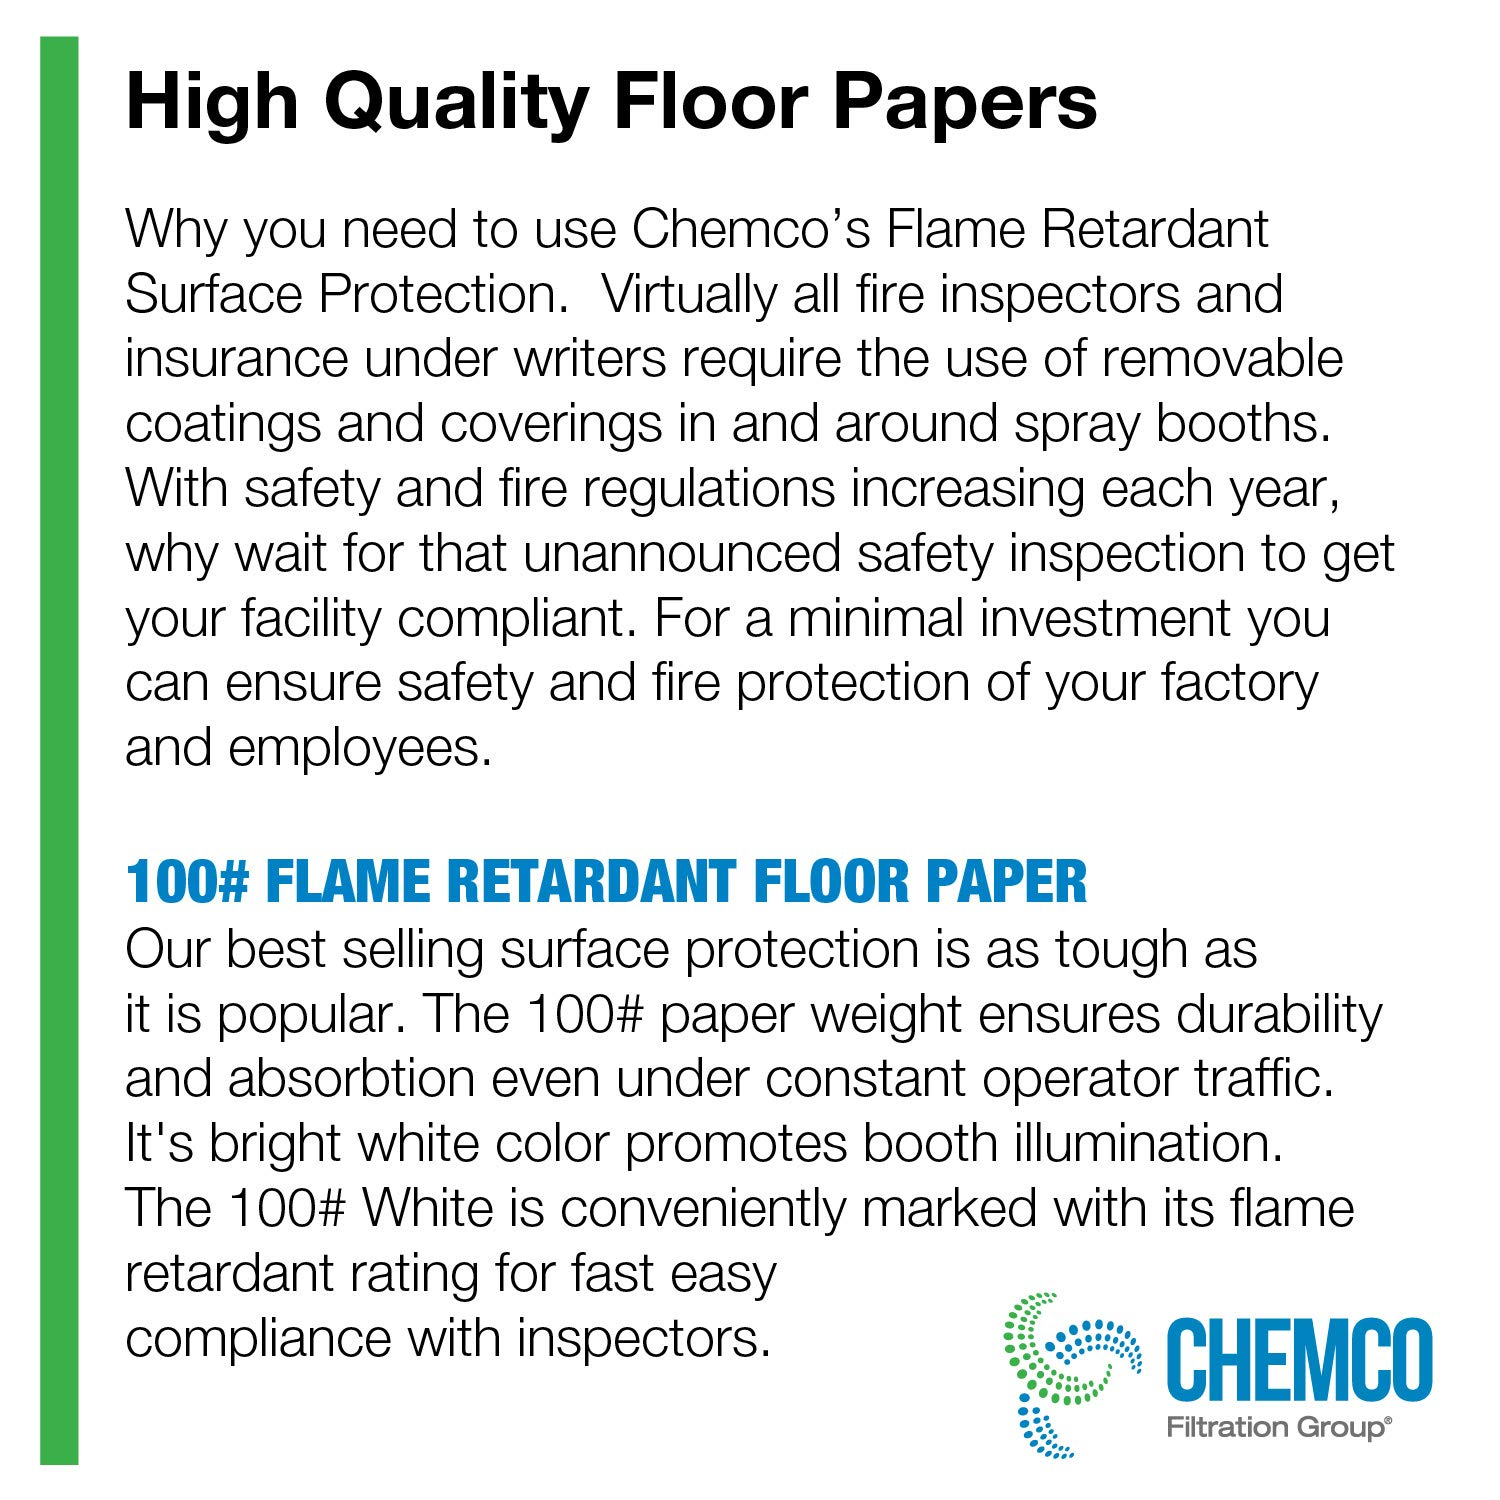 1 Roll 36SKFRP 300x36 100# White Flame Retardant Floor Paper Roll Flame Retardant Surface Protection K/&L Services